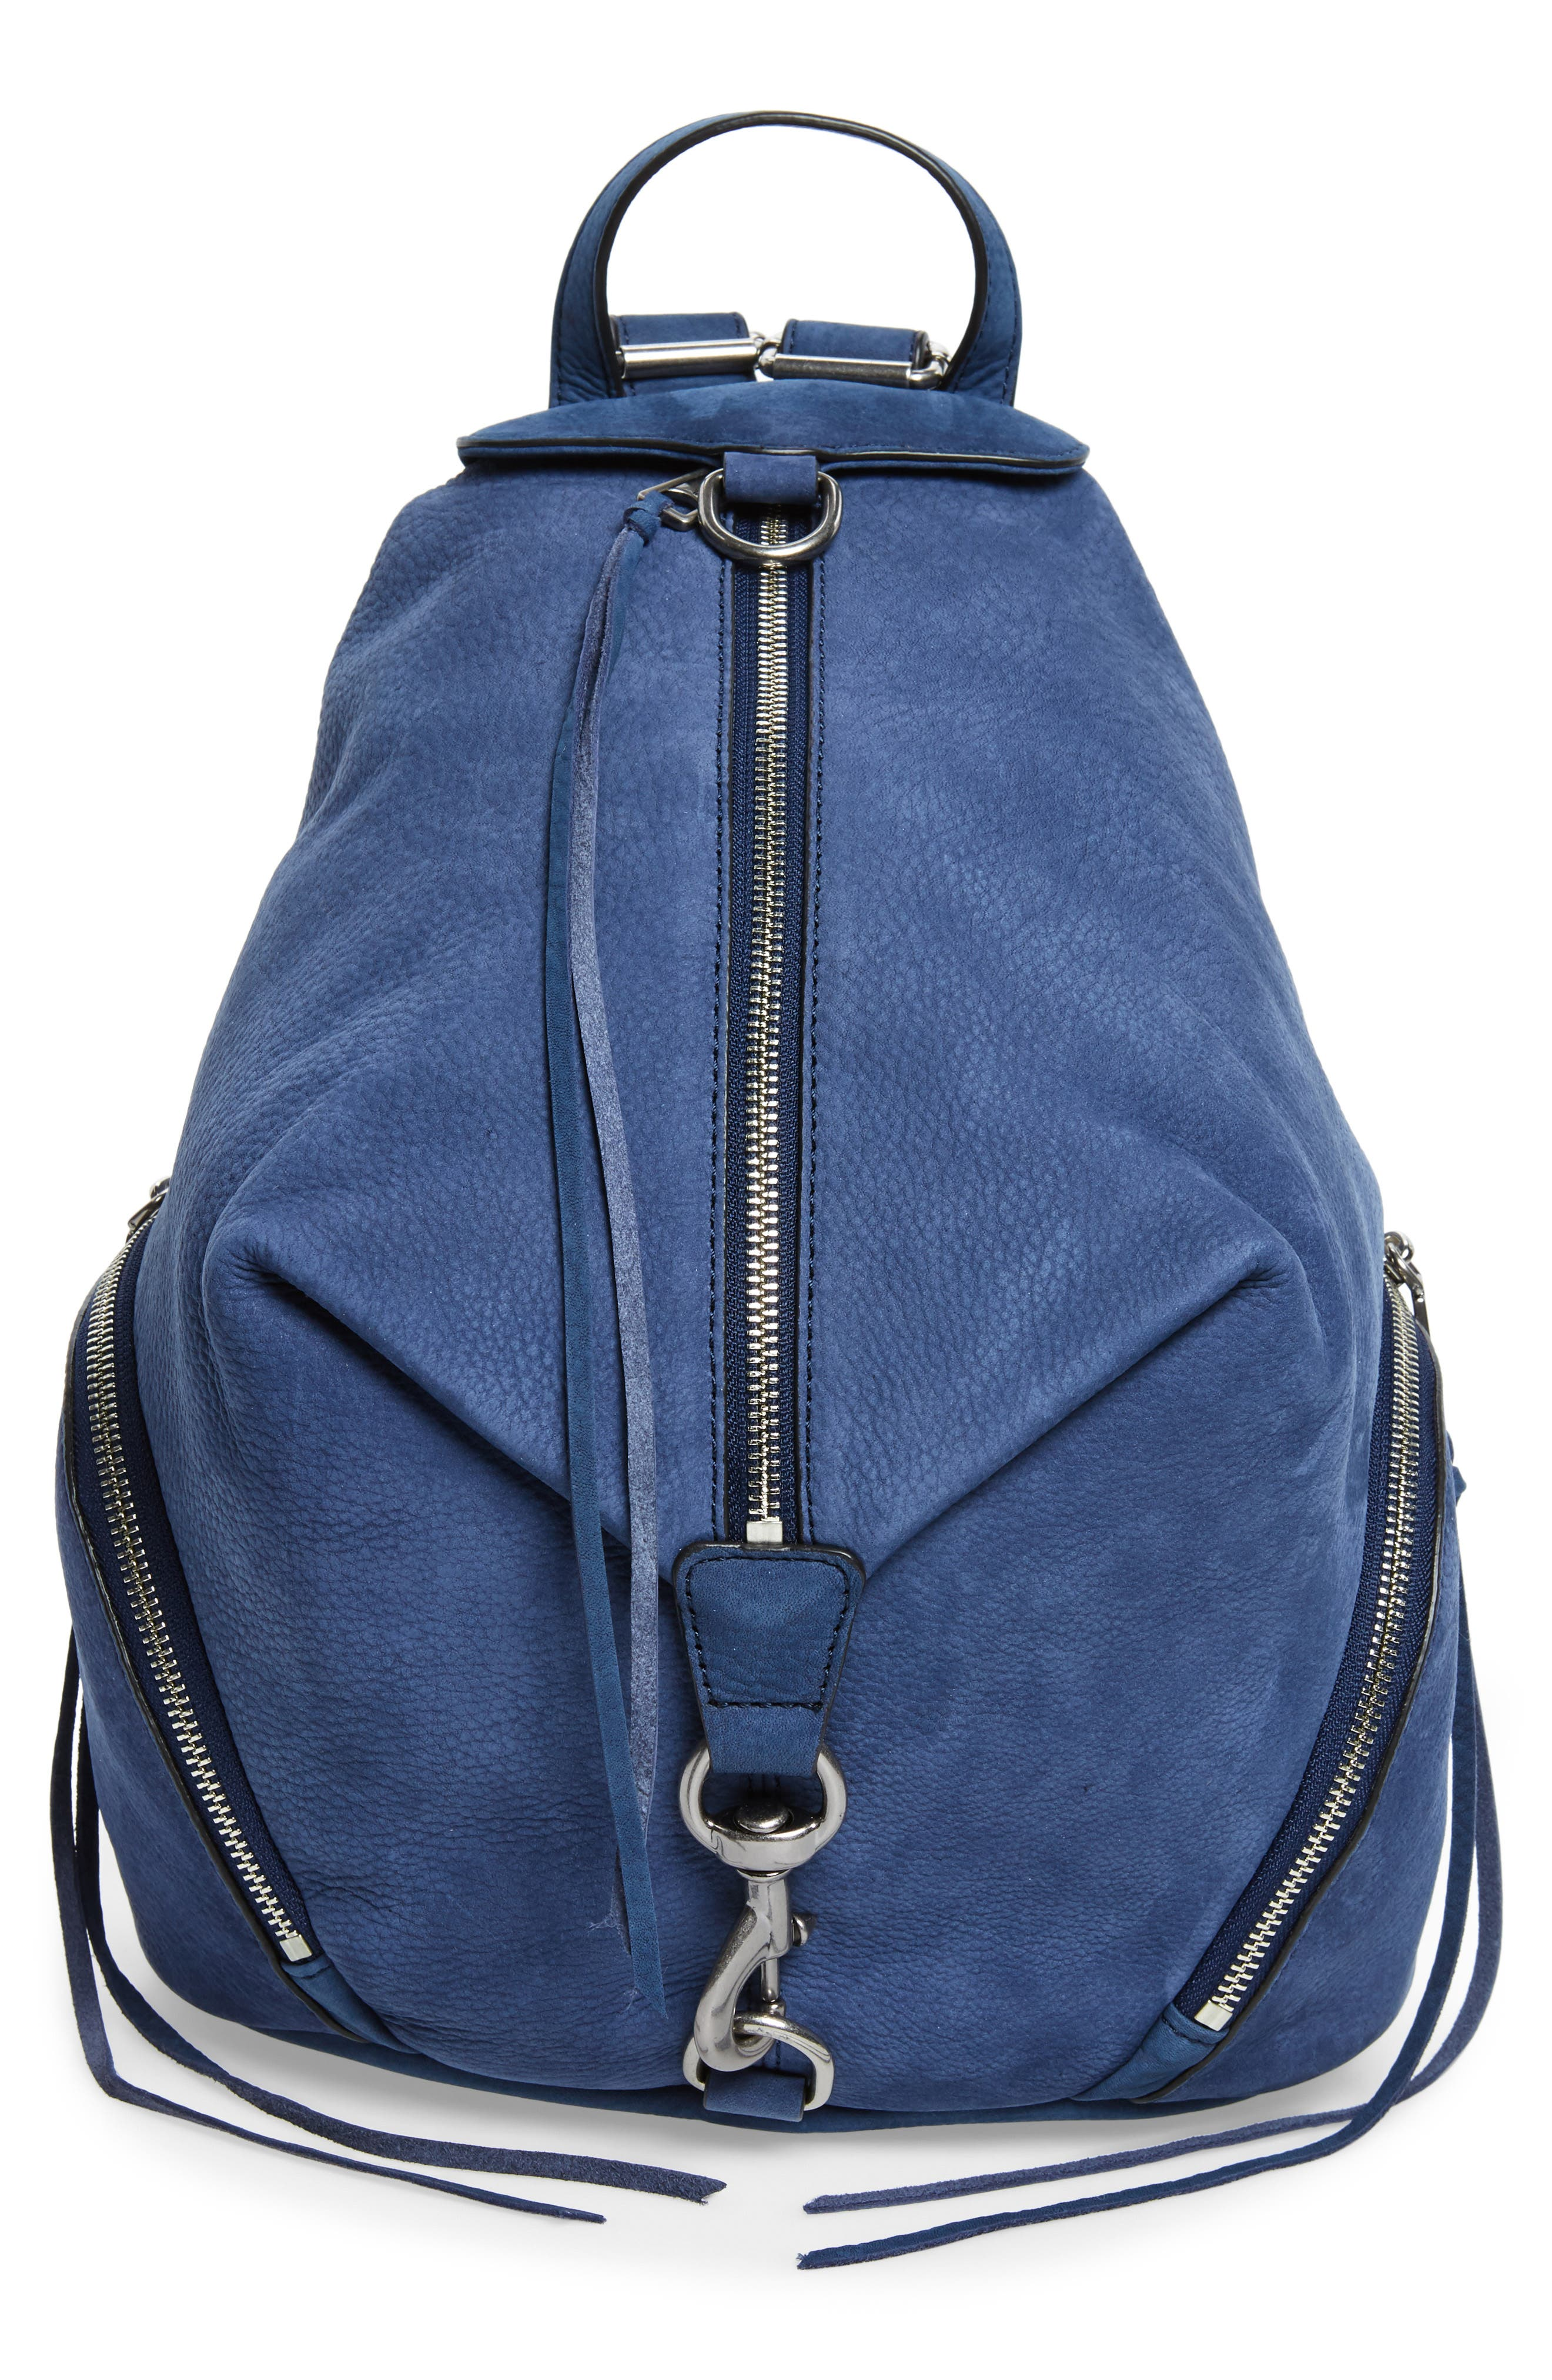 Julian Convertible Nubuck Leather Backpack,                             Main thumbnail 1, color,                             483